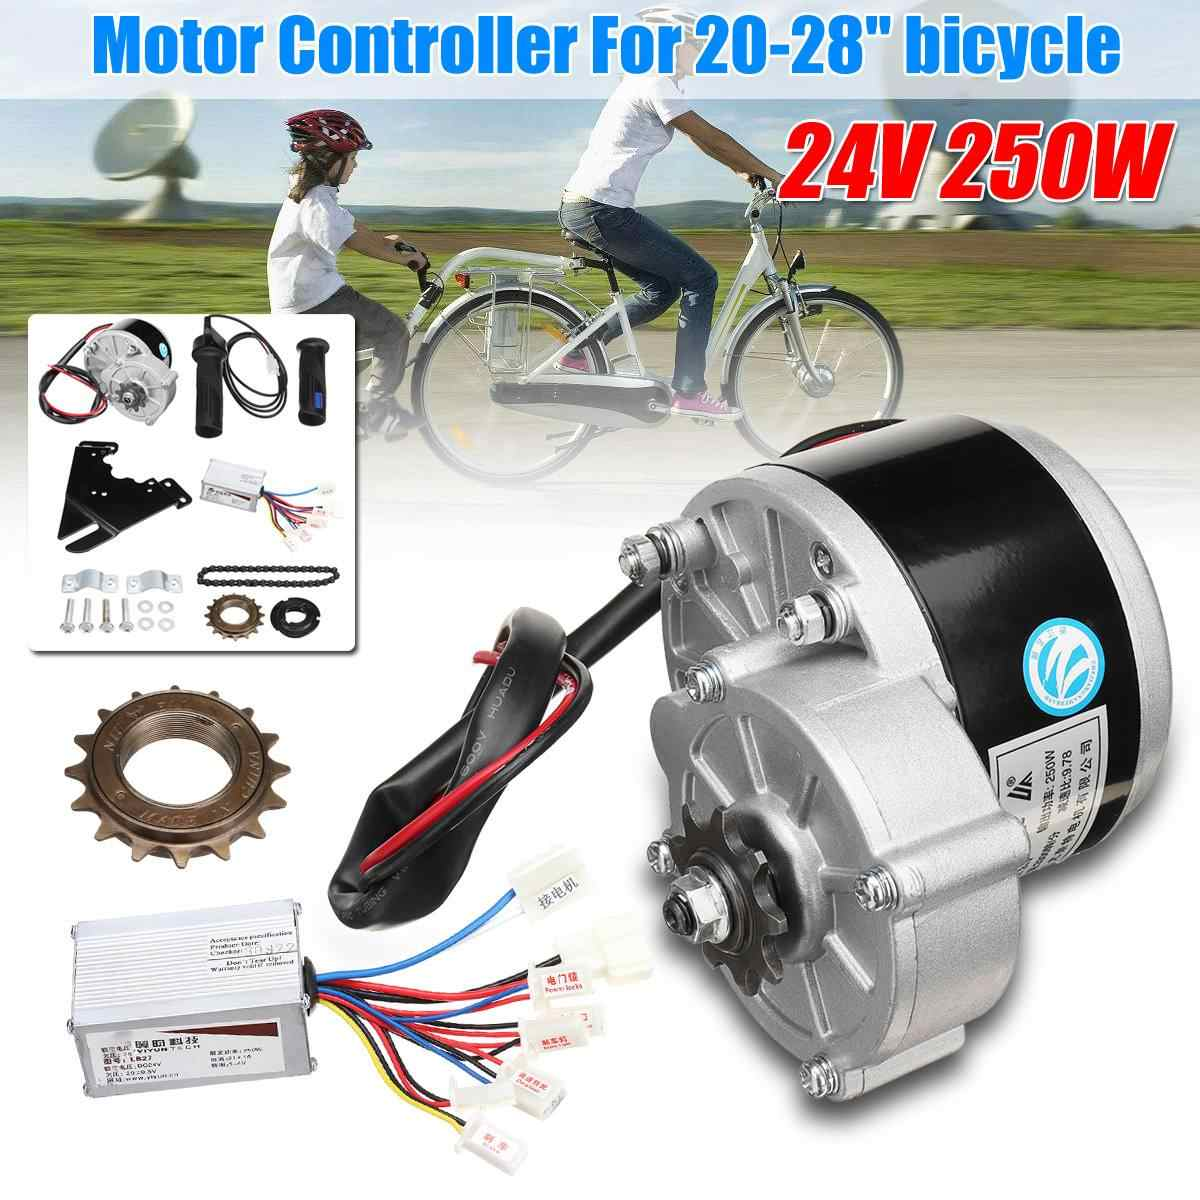 24V 250W Motor Controller Electric Bike Conversion Kit Flywheel Handle Motor Bracket Chain For 20-28 inch e-bike Bicycle kit